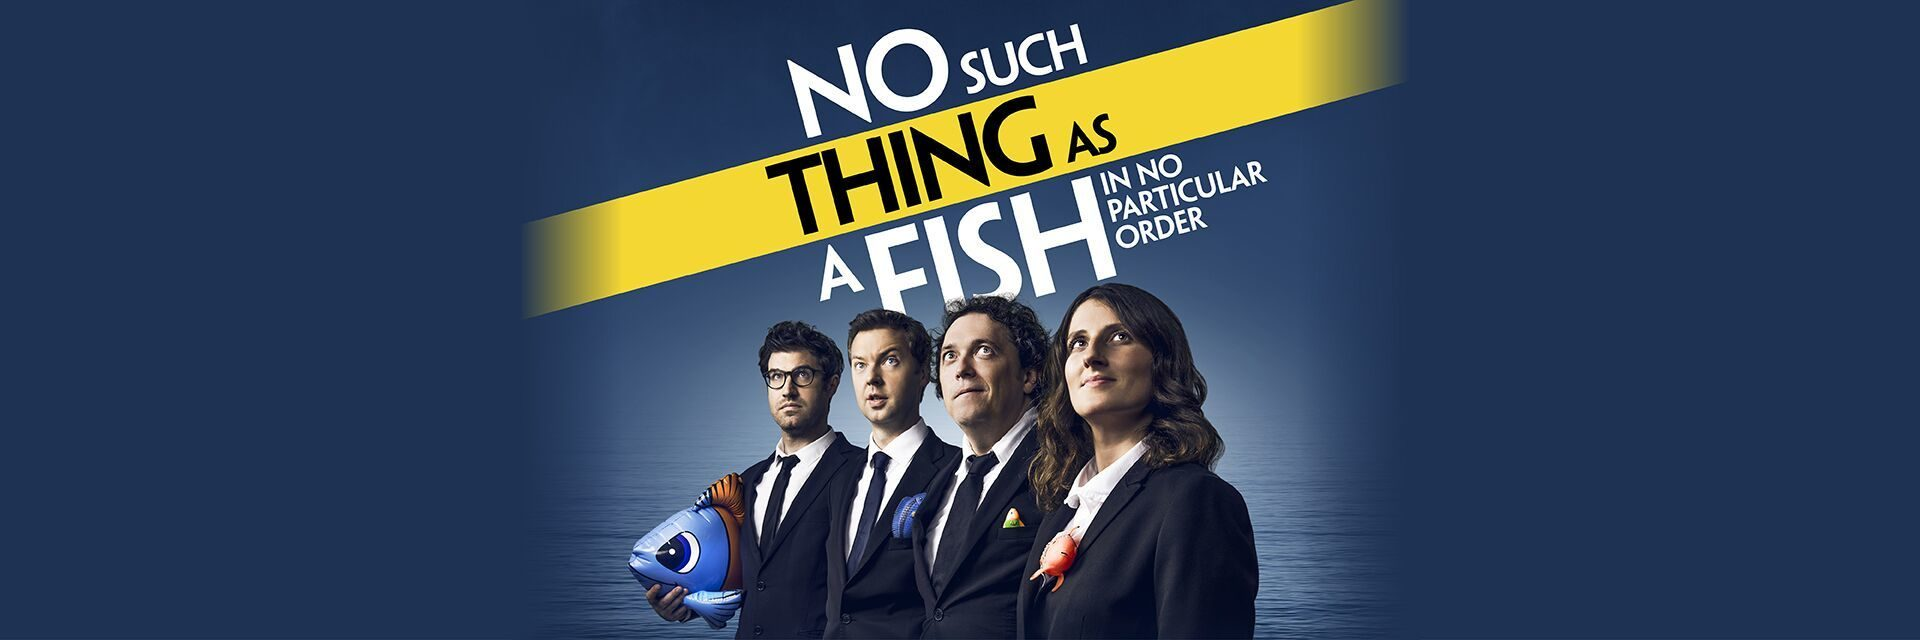 No Such Thing As A Fish-In No Particular Order